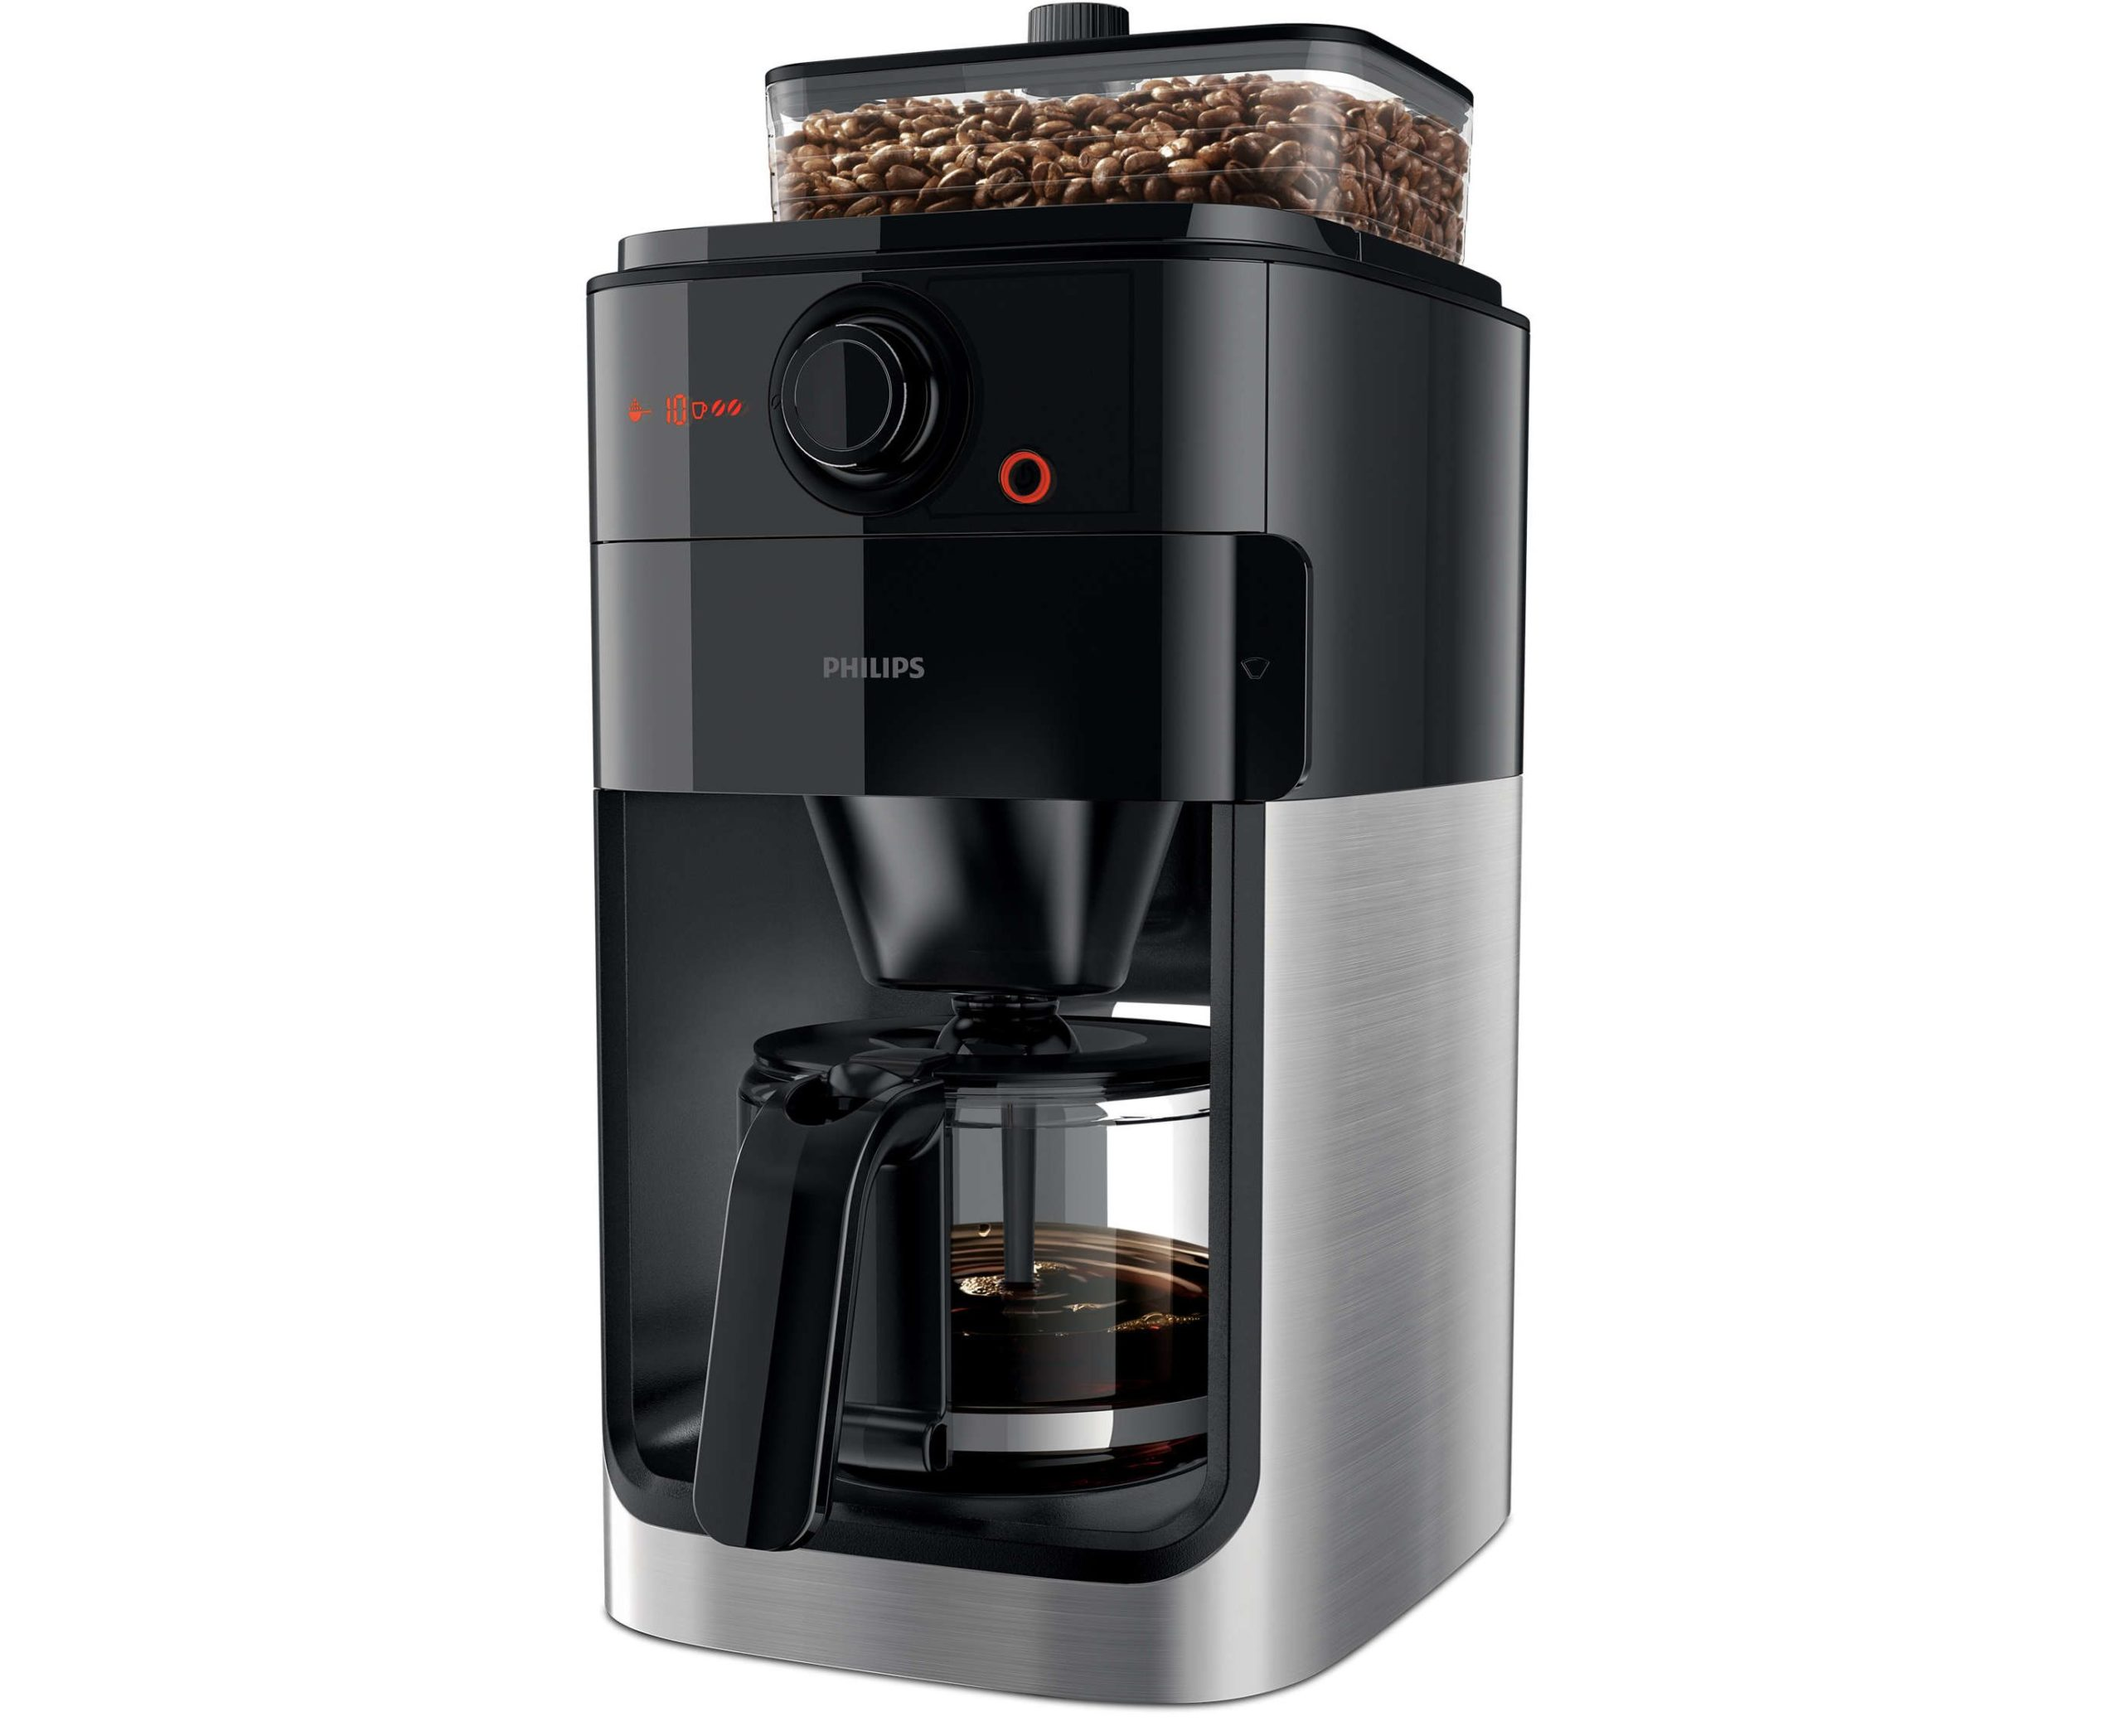 Philips HD7767 Grind & Brew